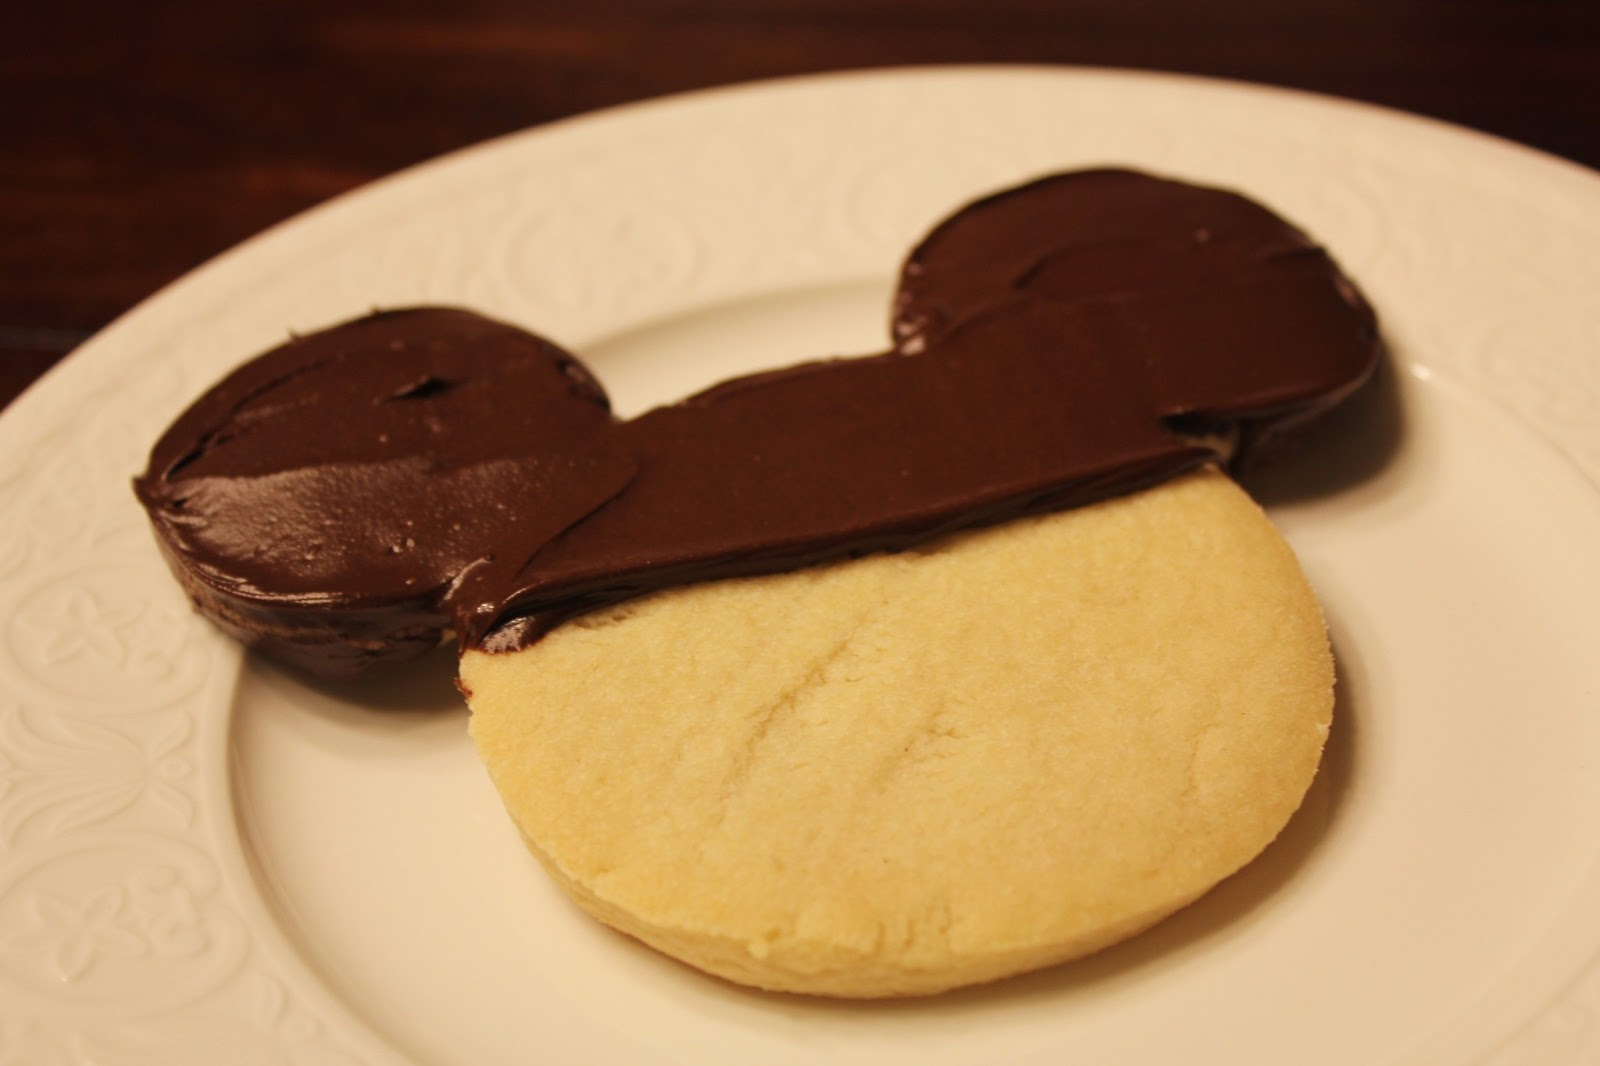 ... Disney at Home: Disneyland's Chocolate Dipped Shortbread Cookie Recipe